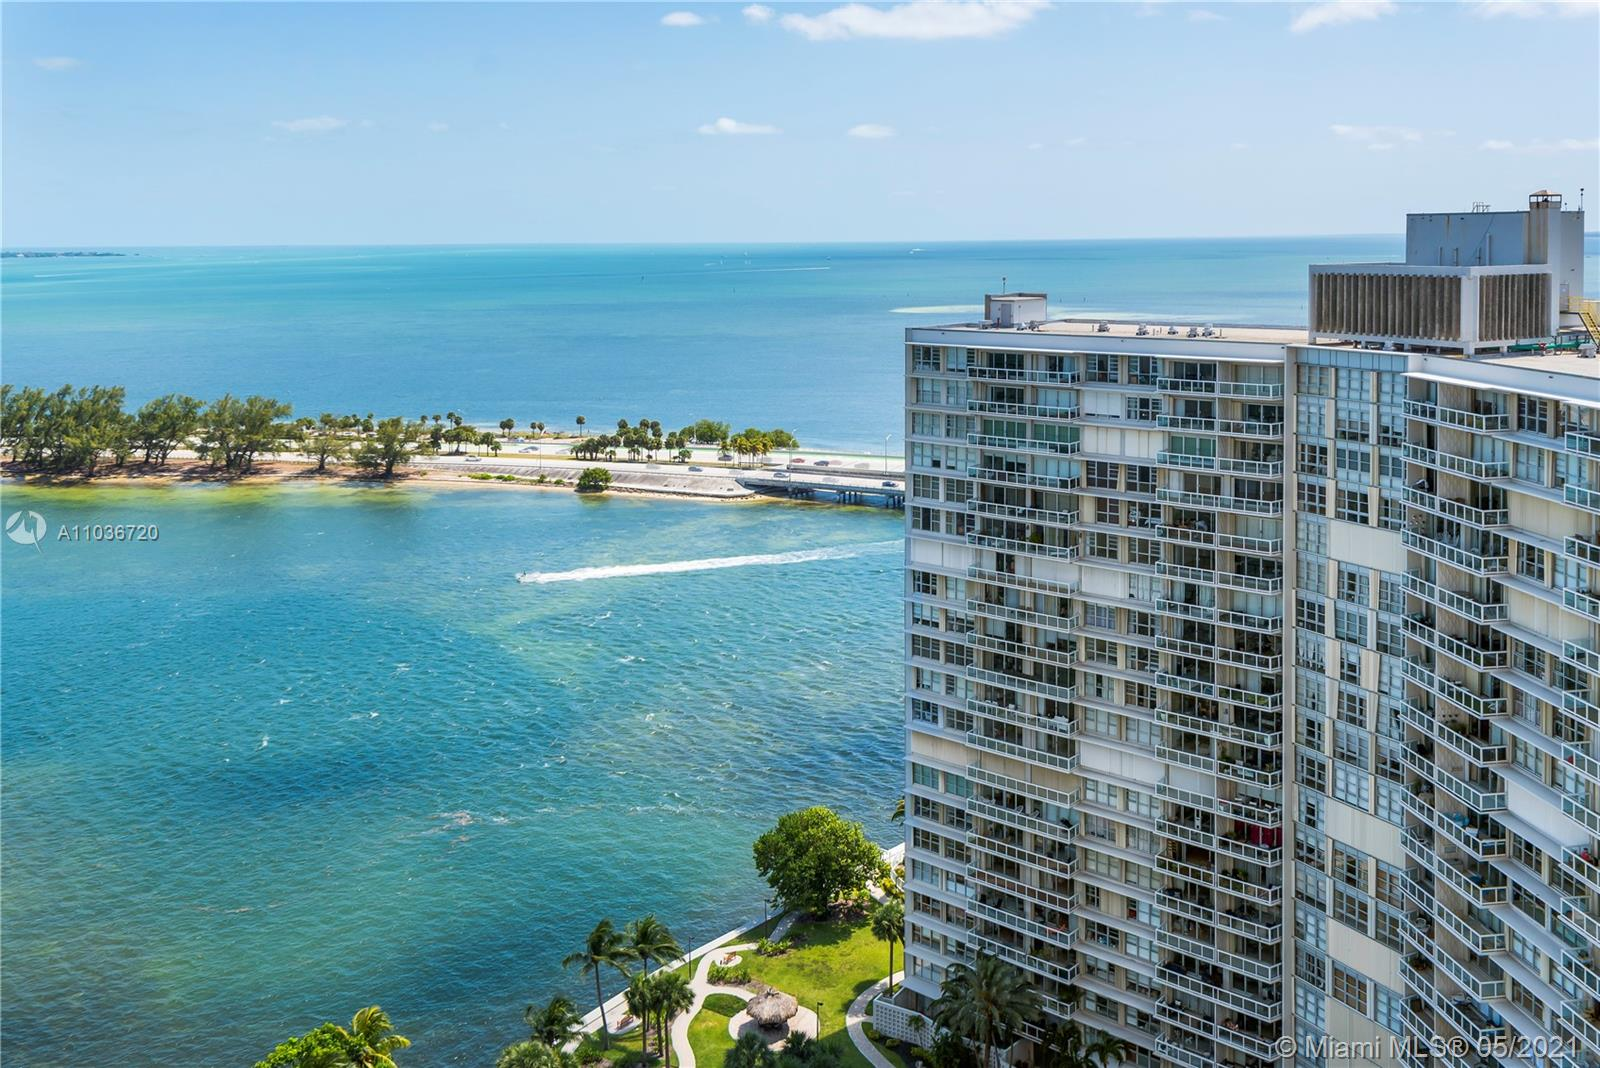 Located in the Heart of South Florida's Financial District, this family friendly community is surrounded by excellent private schools, parks and local attractions. Enjoy amazing panoramic views over Biscayne Bay from this spacious, 2 Bed/2 Bath condo featuring water views, large kitchen, double walk-in closets and Marble flooring throughout. Condo has impact windows throughout. Washer & dryer inside unit. Five tennis courts, state of the art fitness center, Olympic pool, convenience store, beauty parlor, assigned covered parking space, 24/7 guard at gate & lobby, and 24/7 valet